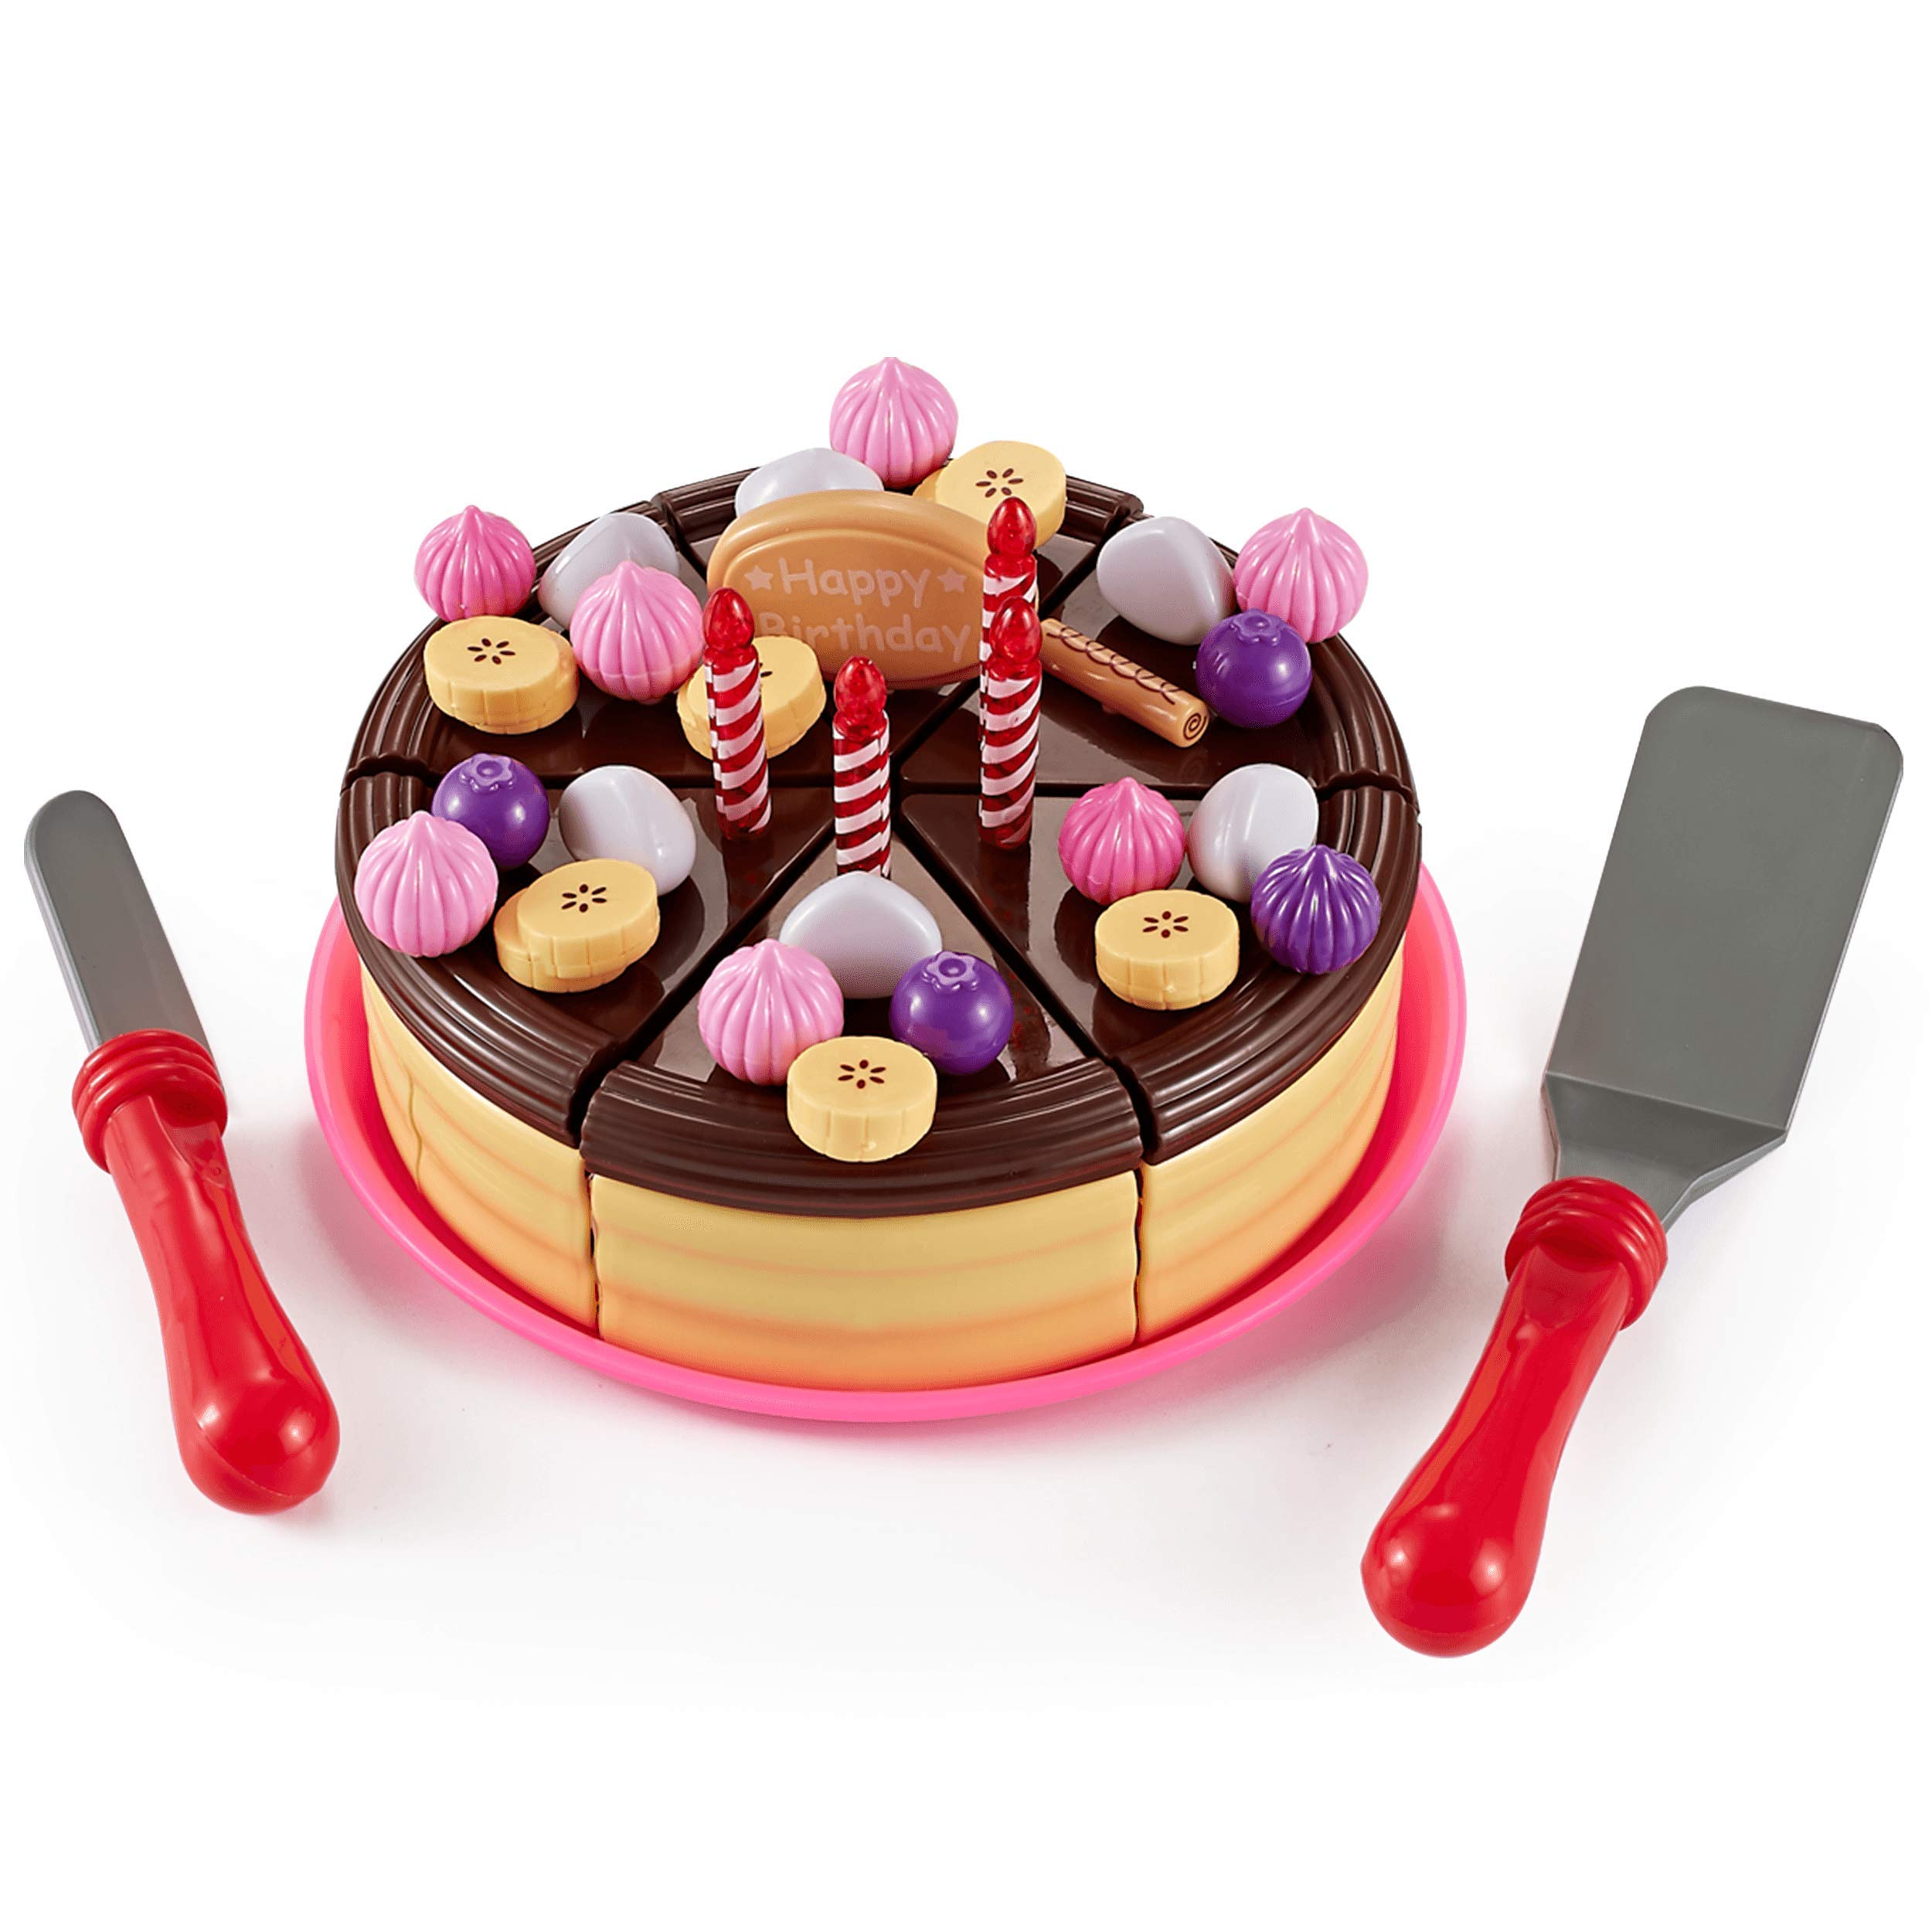 Think Gizmos Play Party Cake TG713 - Party Cake Play Set for Kids Aged 3 4 5 6 by Think Gizmos (Image #1)